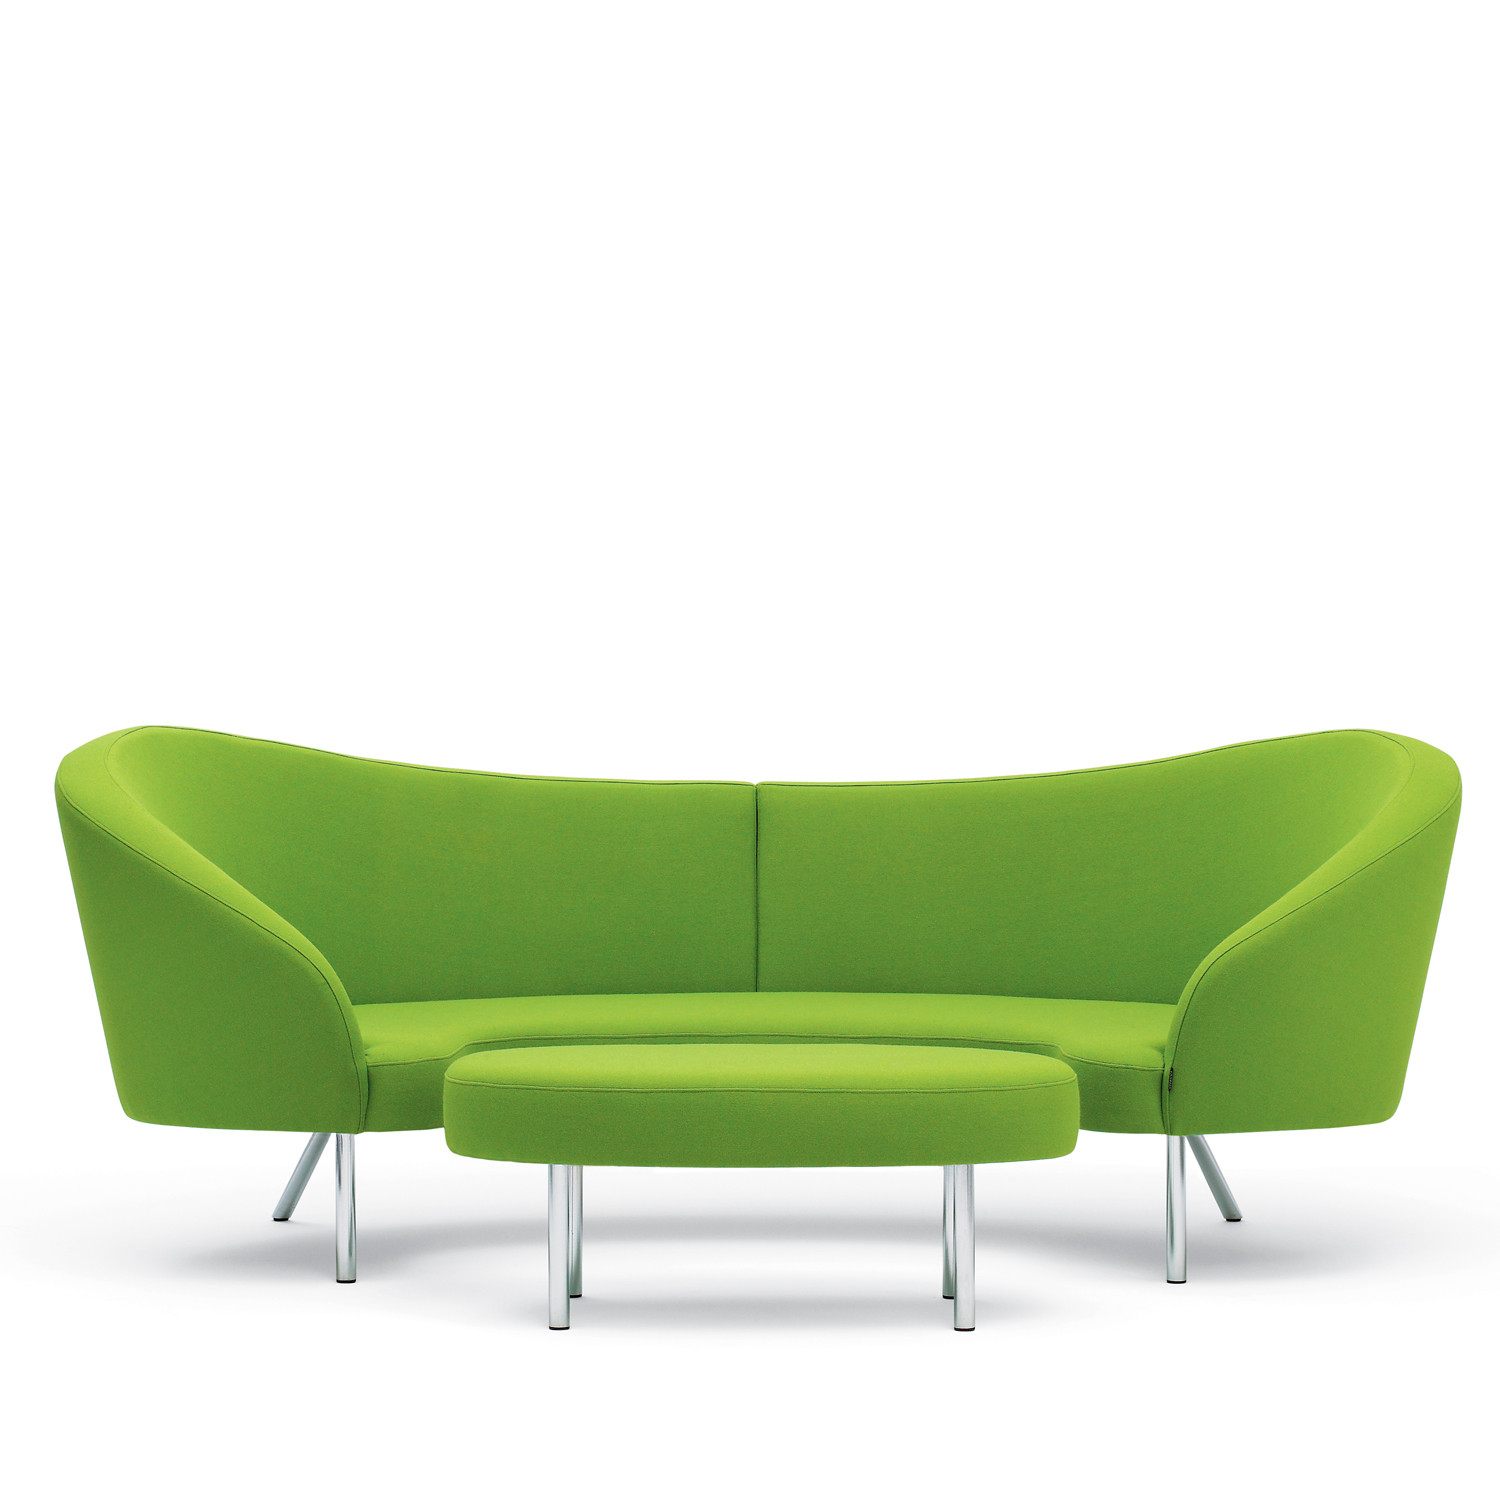 Orgy Sofa Soft Reception Seating Apres Furniture